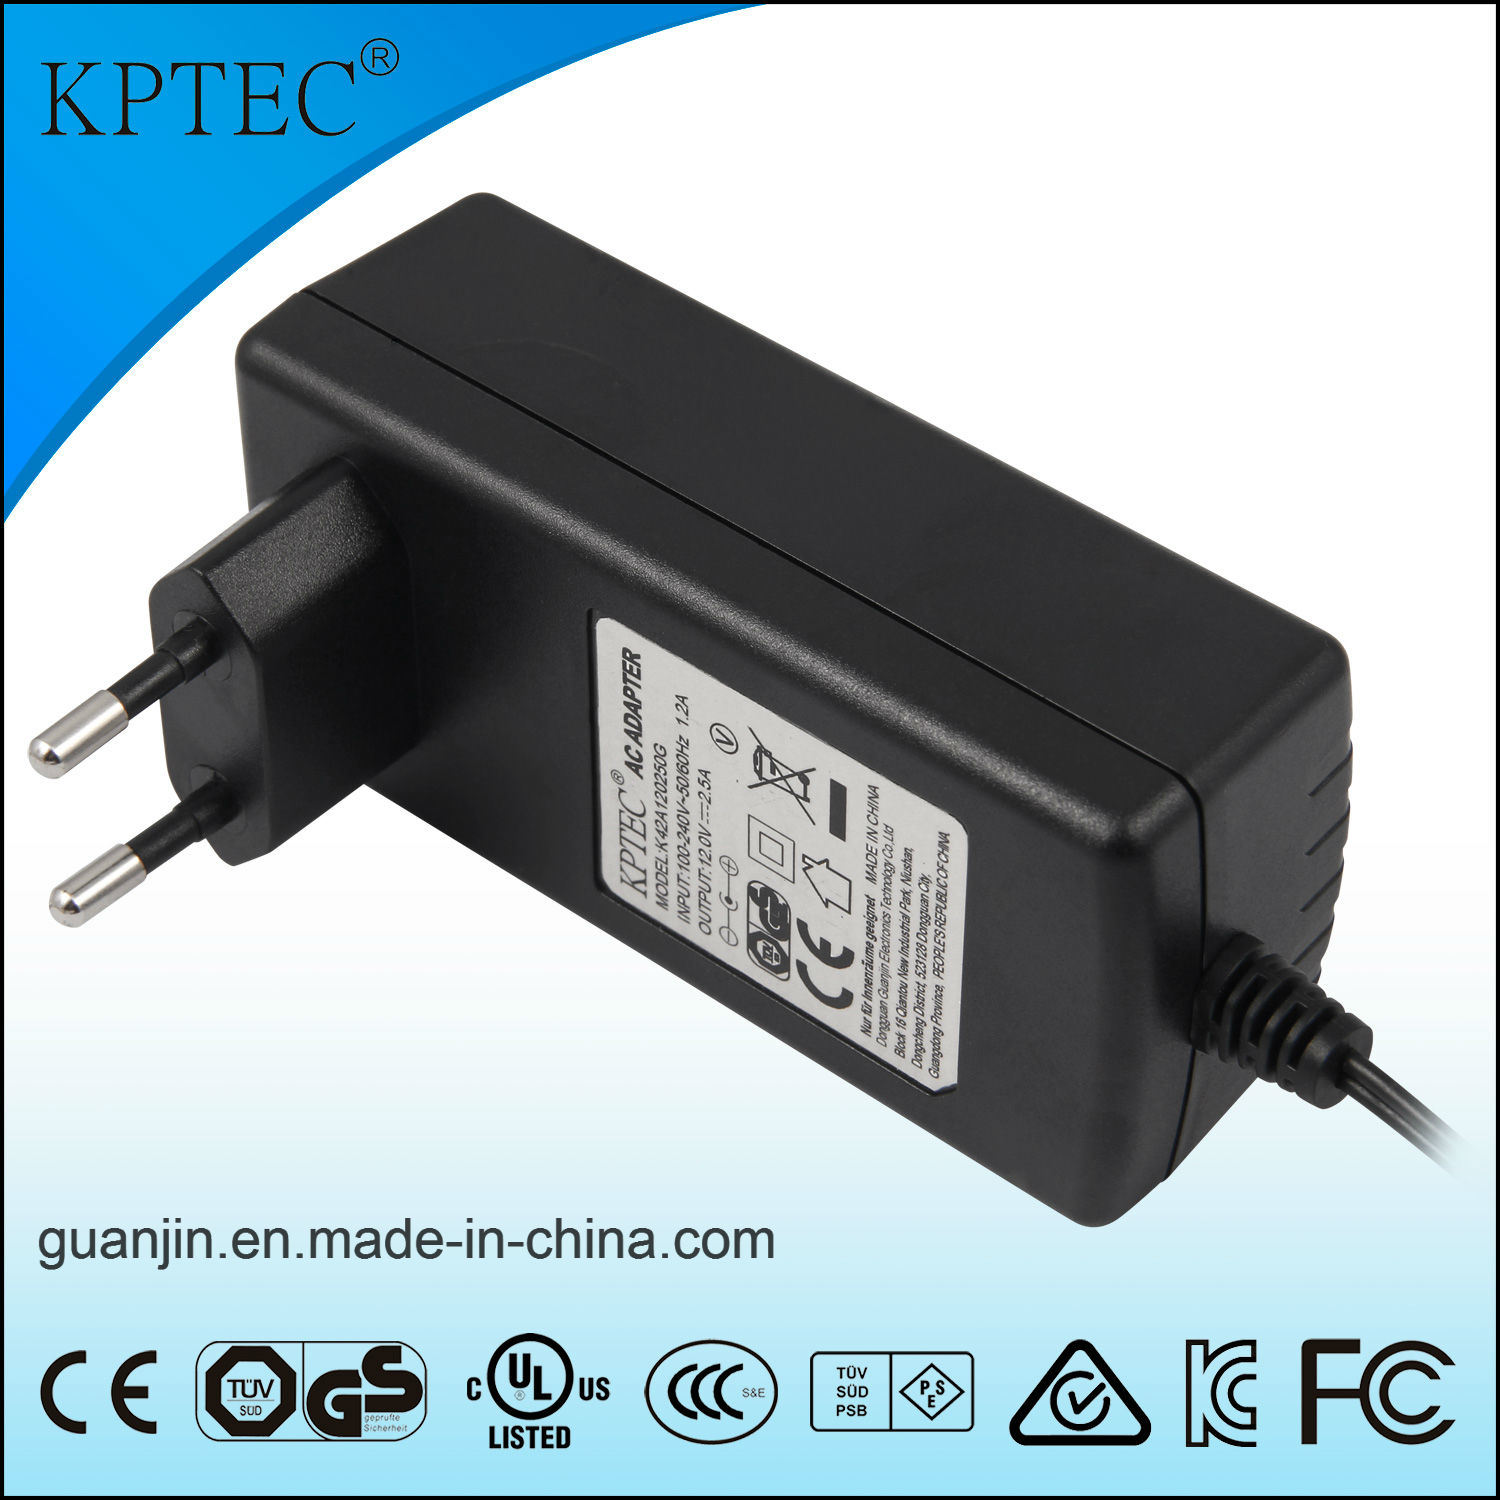 Power Supply with EU Us Au Japan Plug Kptec Maker